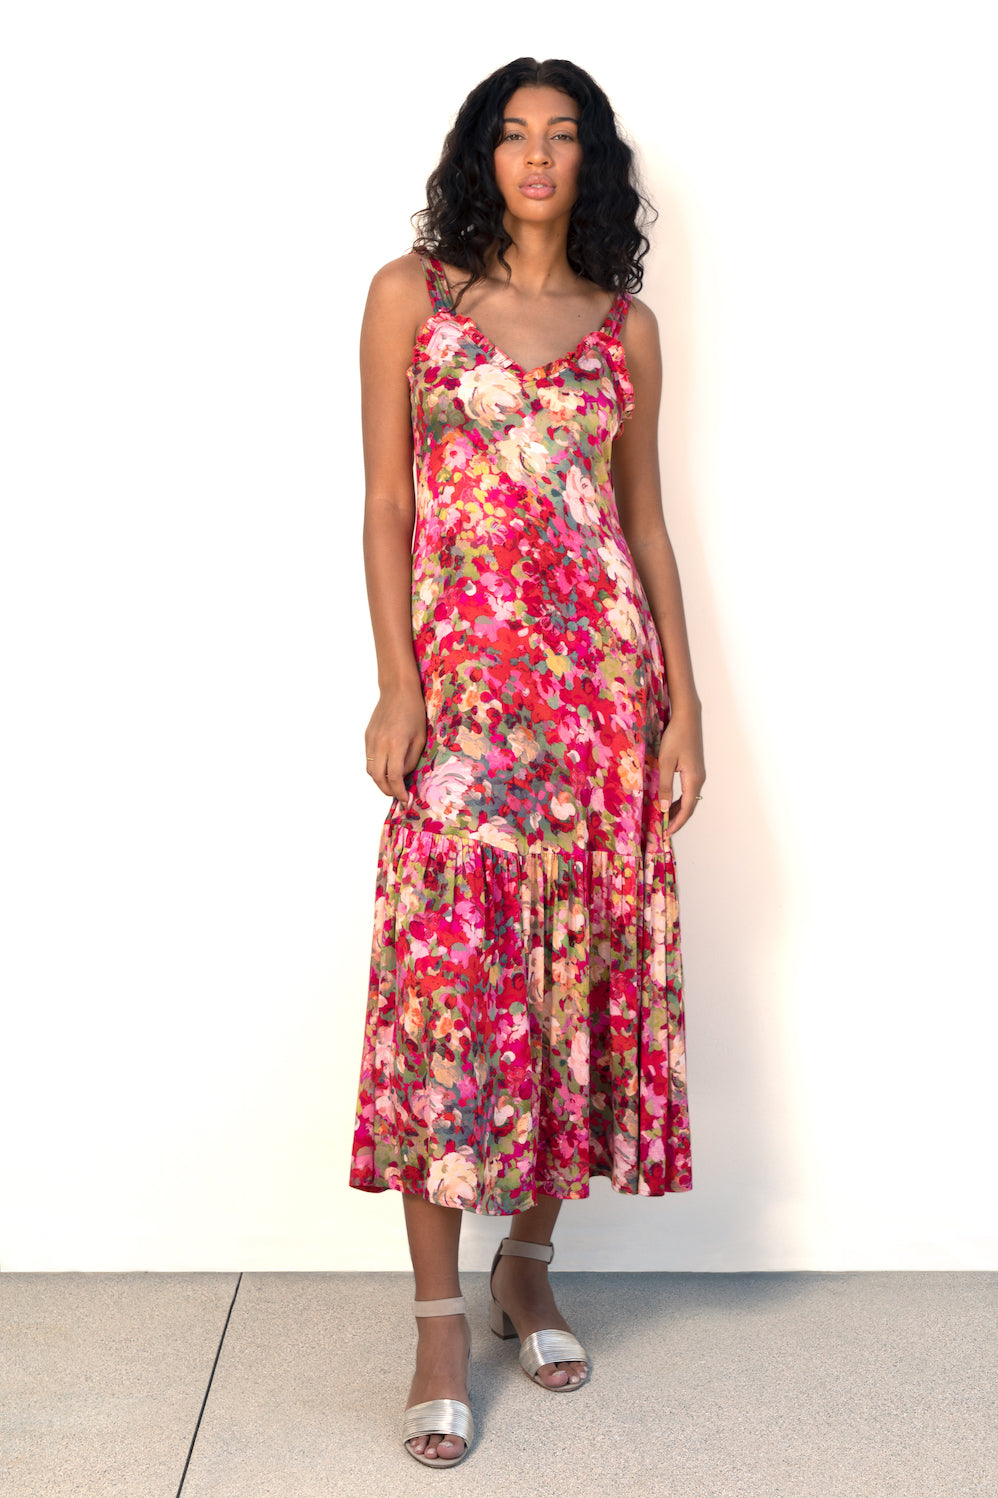 Model wears Finchley Camino's red floral printed maxi length dress with large ruffle hem and sweetheart neckline with ruffle trim